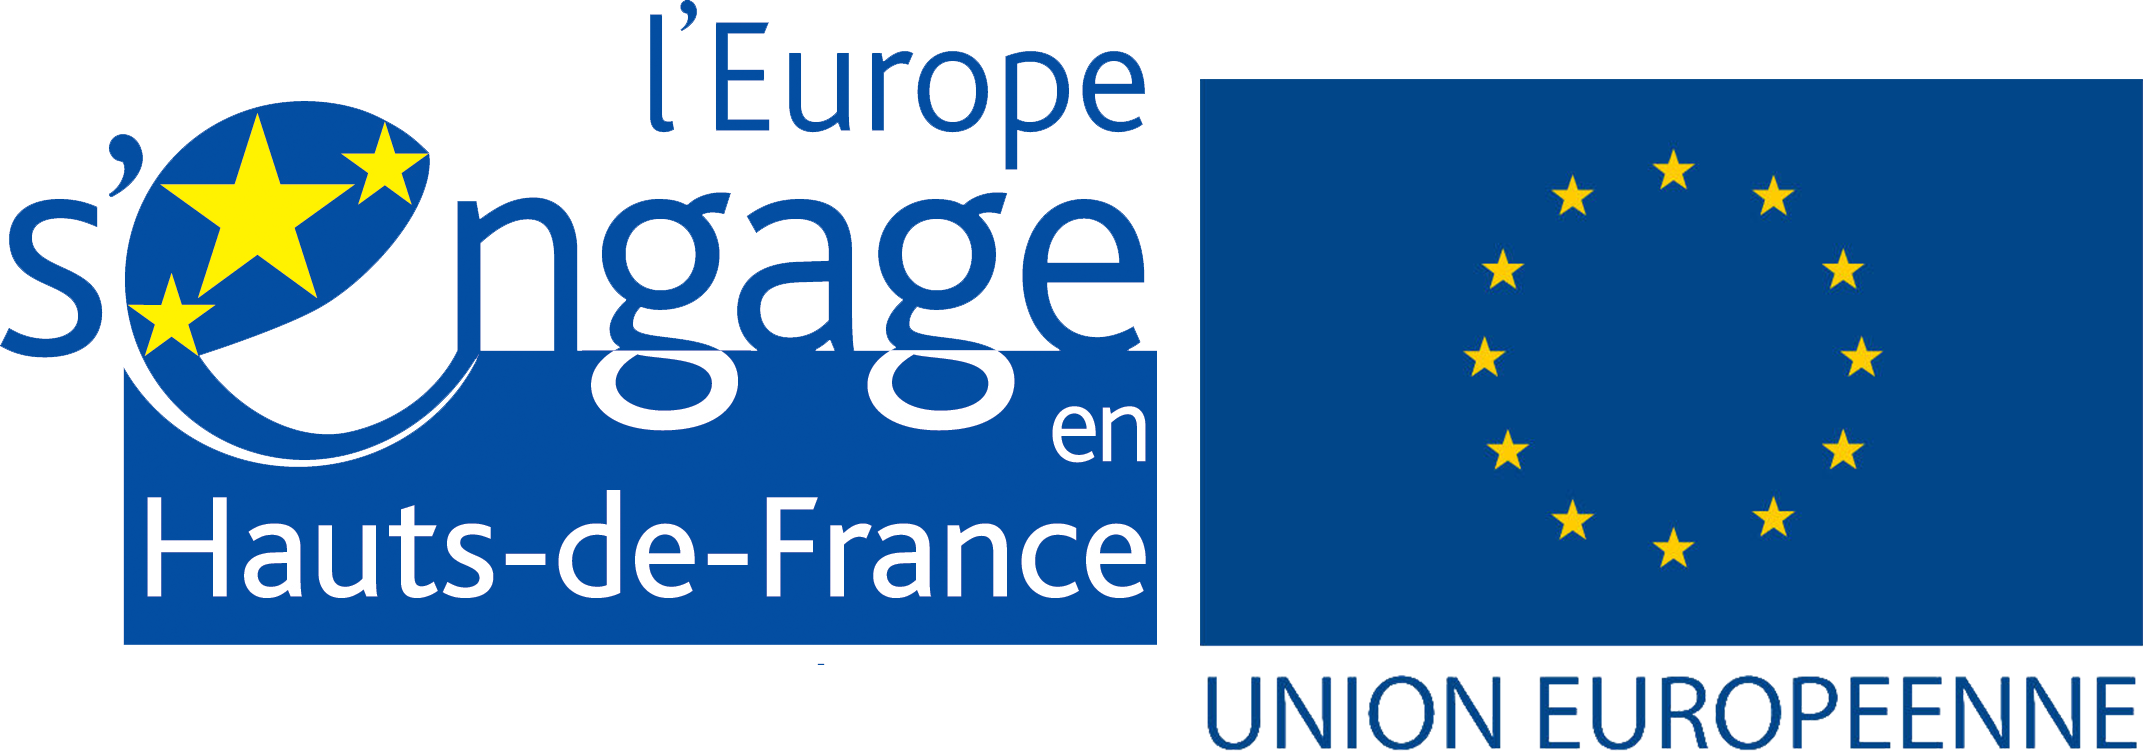 consignelaWpf/Assets/logos/Europ_Union.png